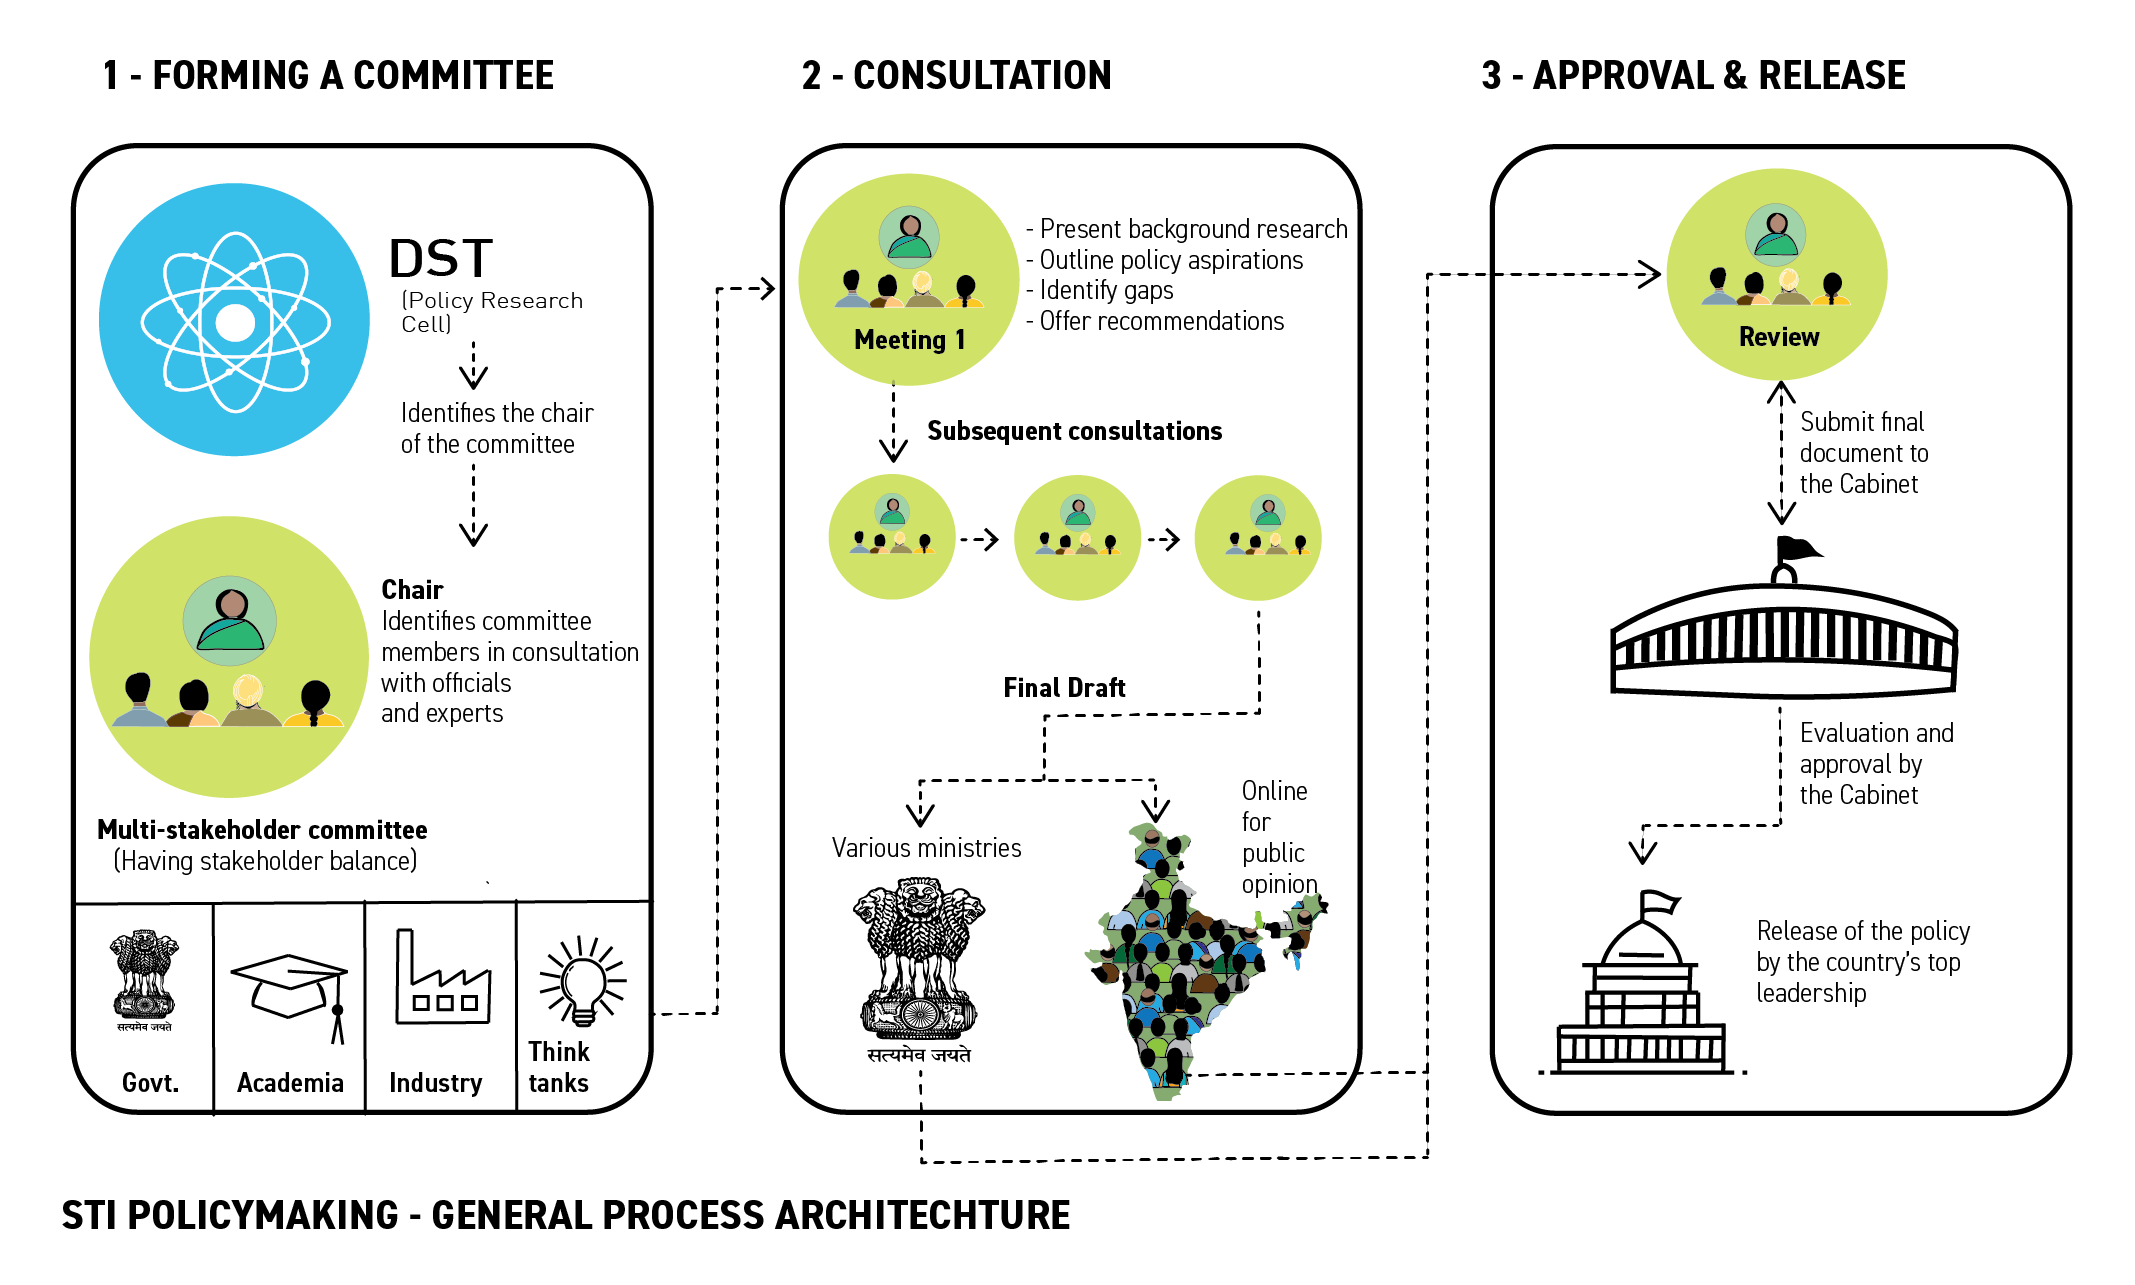 General Process Architecture for STI Policymaking in India